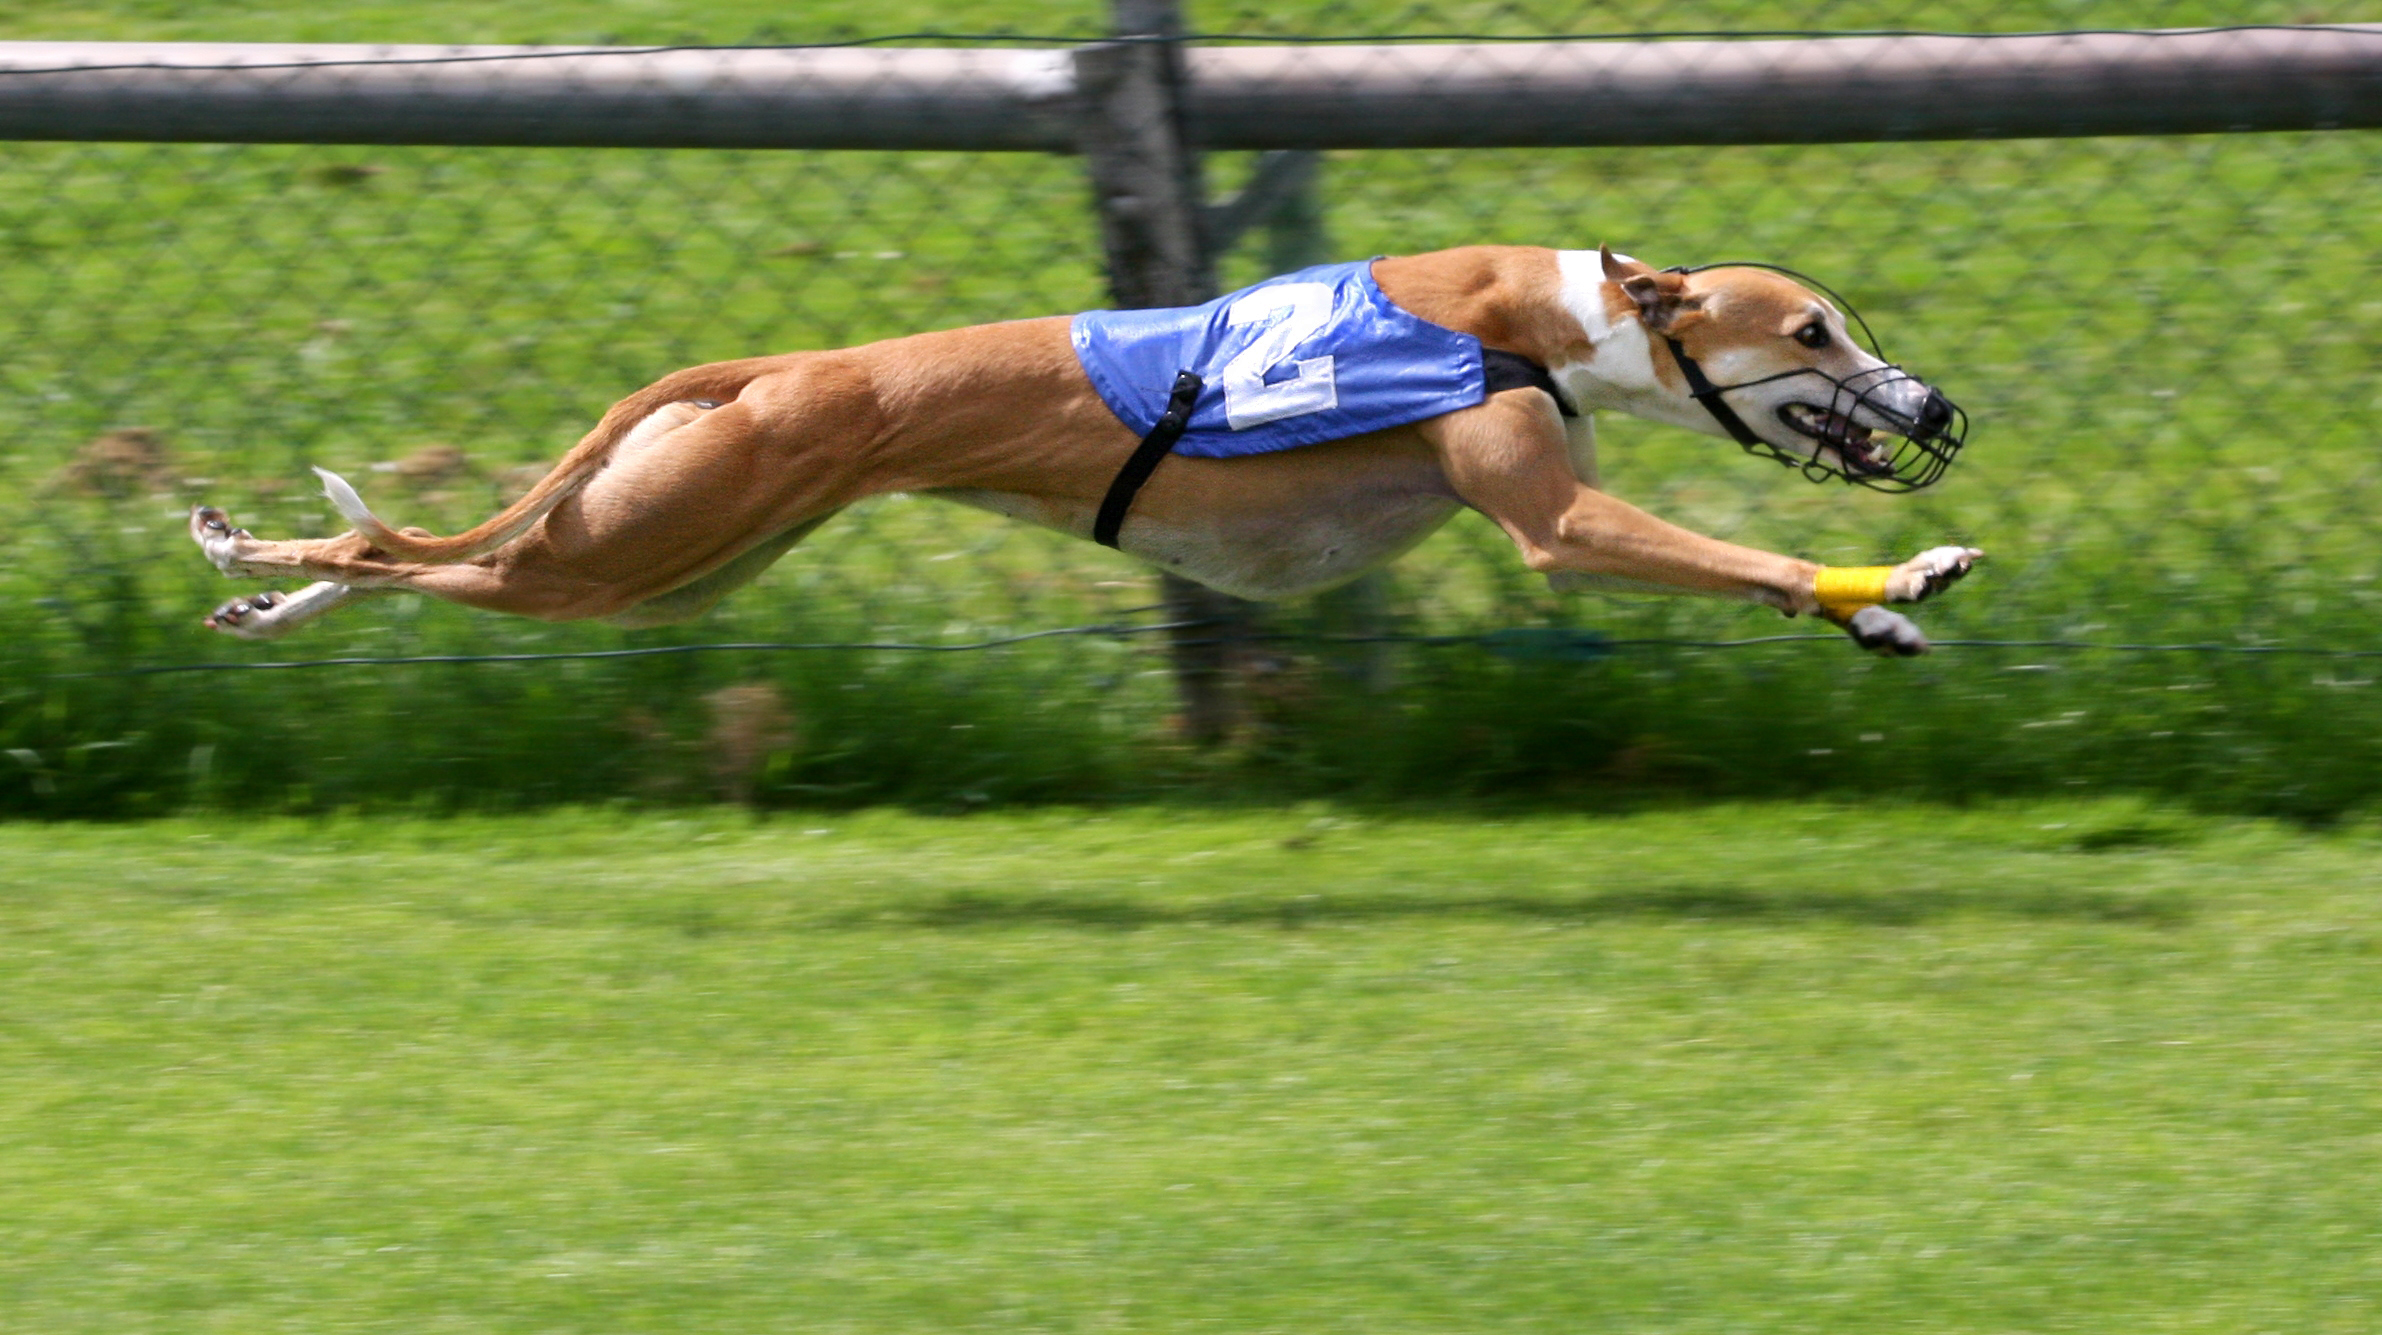 A racing Greyhound at full extension